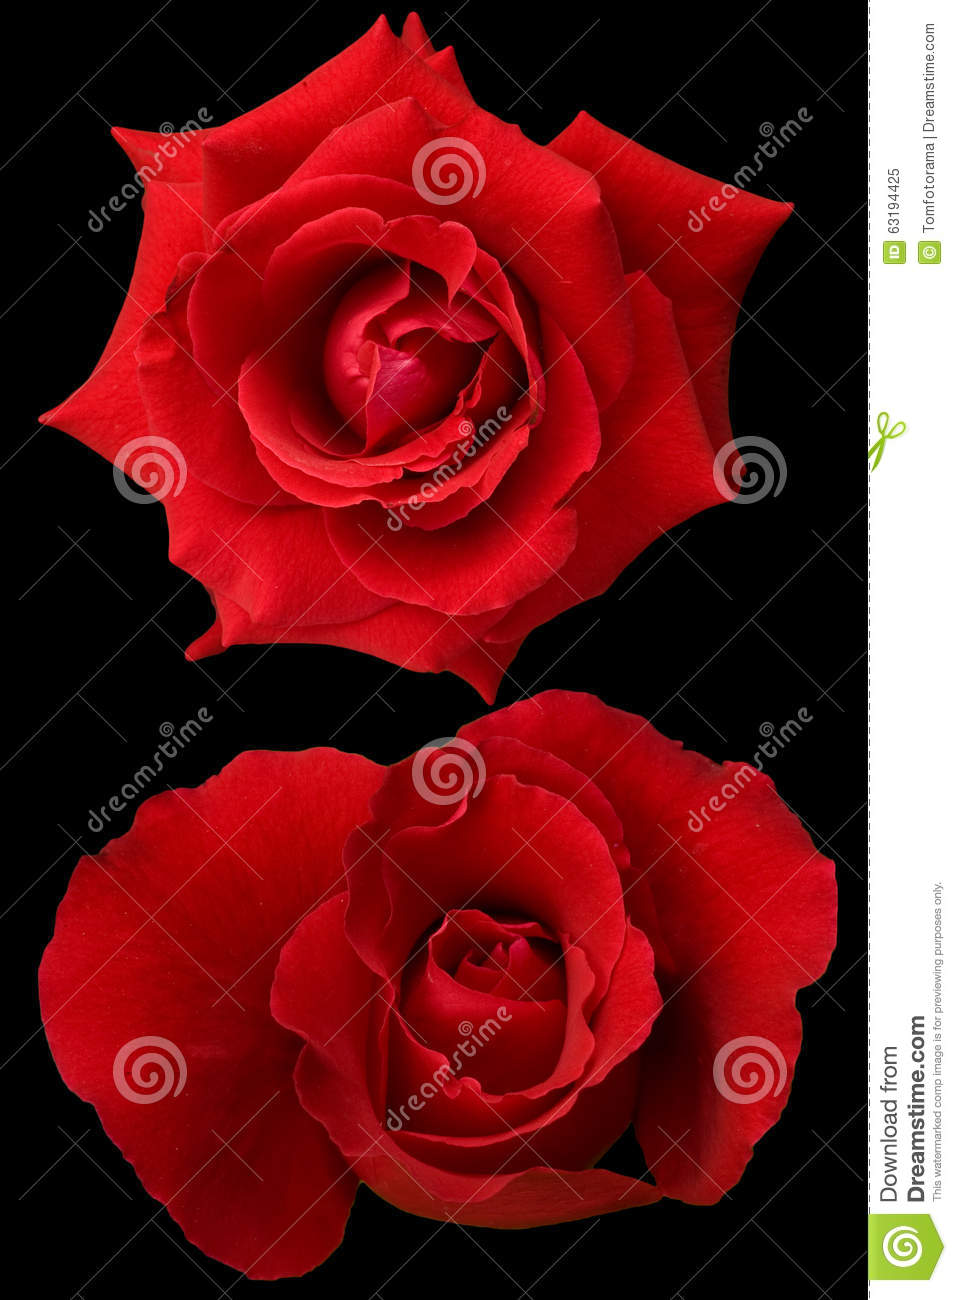 Red roses on black backgroundbeautiful flowerslove stock image red roses on black backgroundbeautiful flowerslove izmirmasajfo